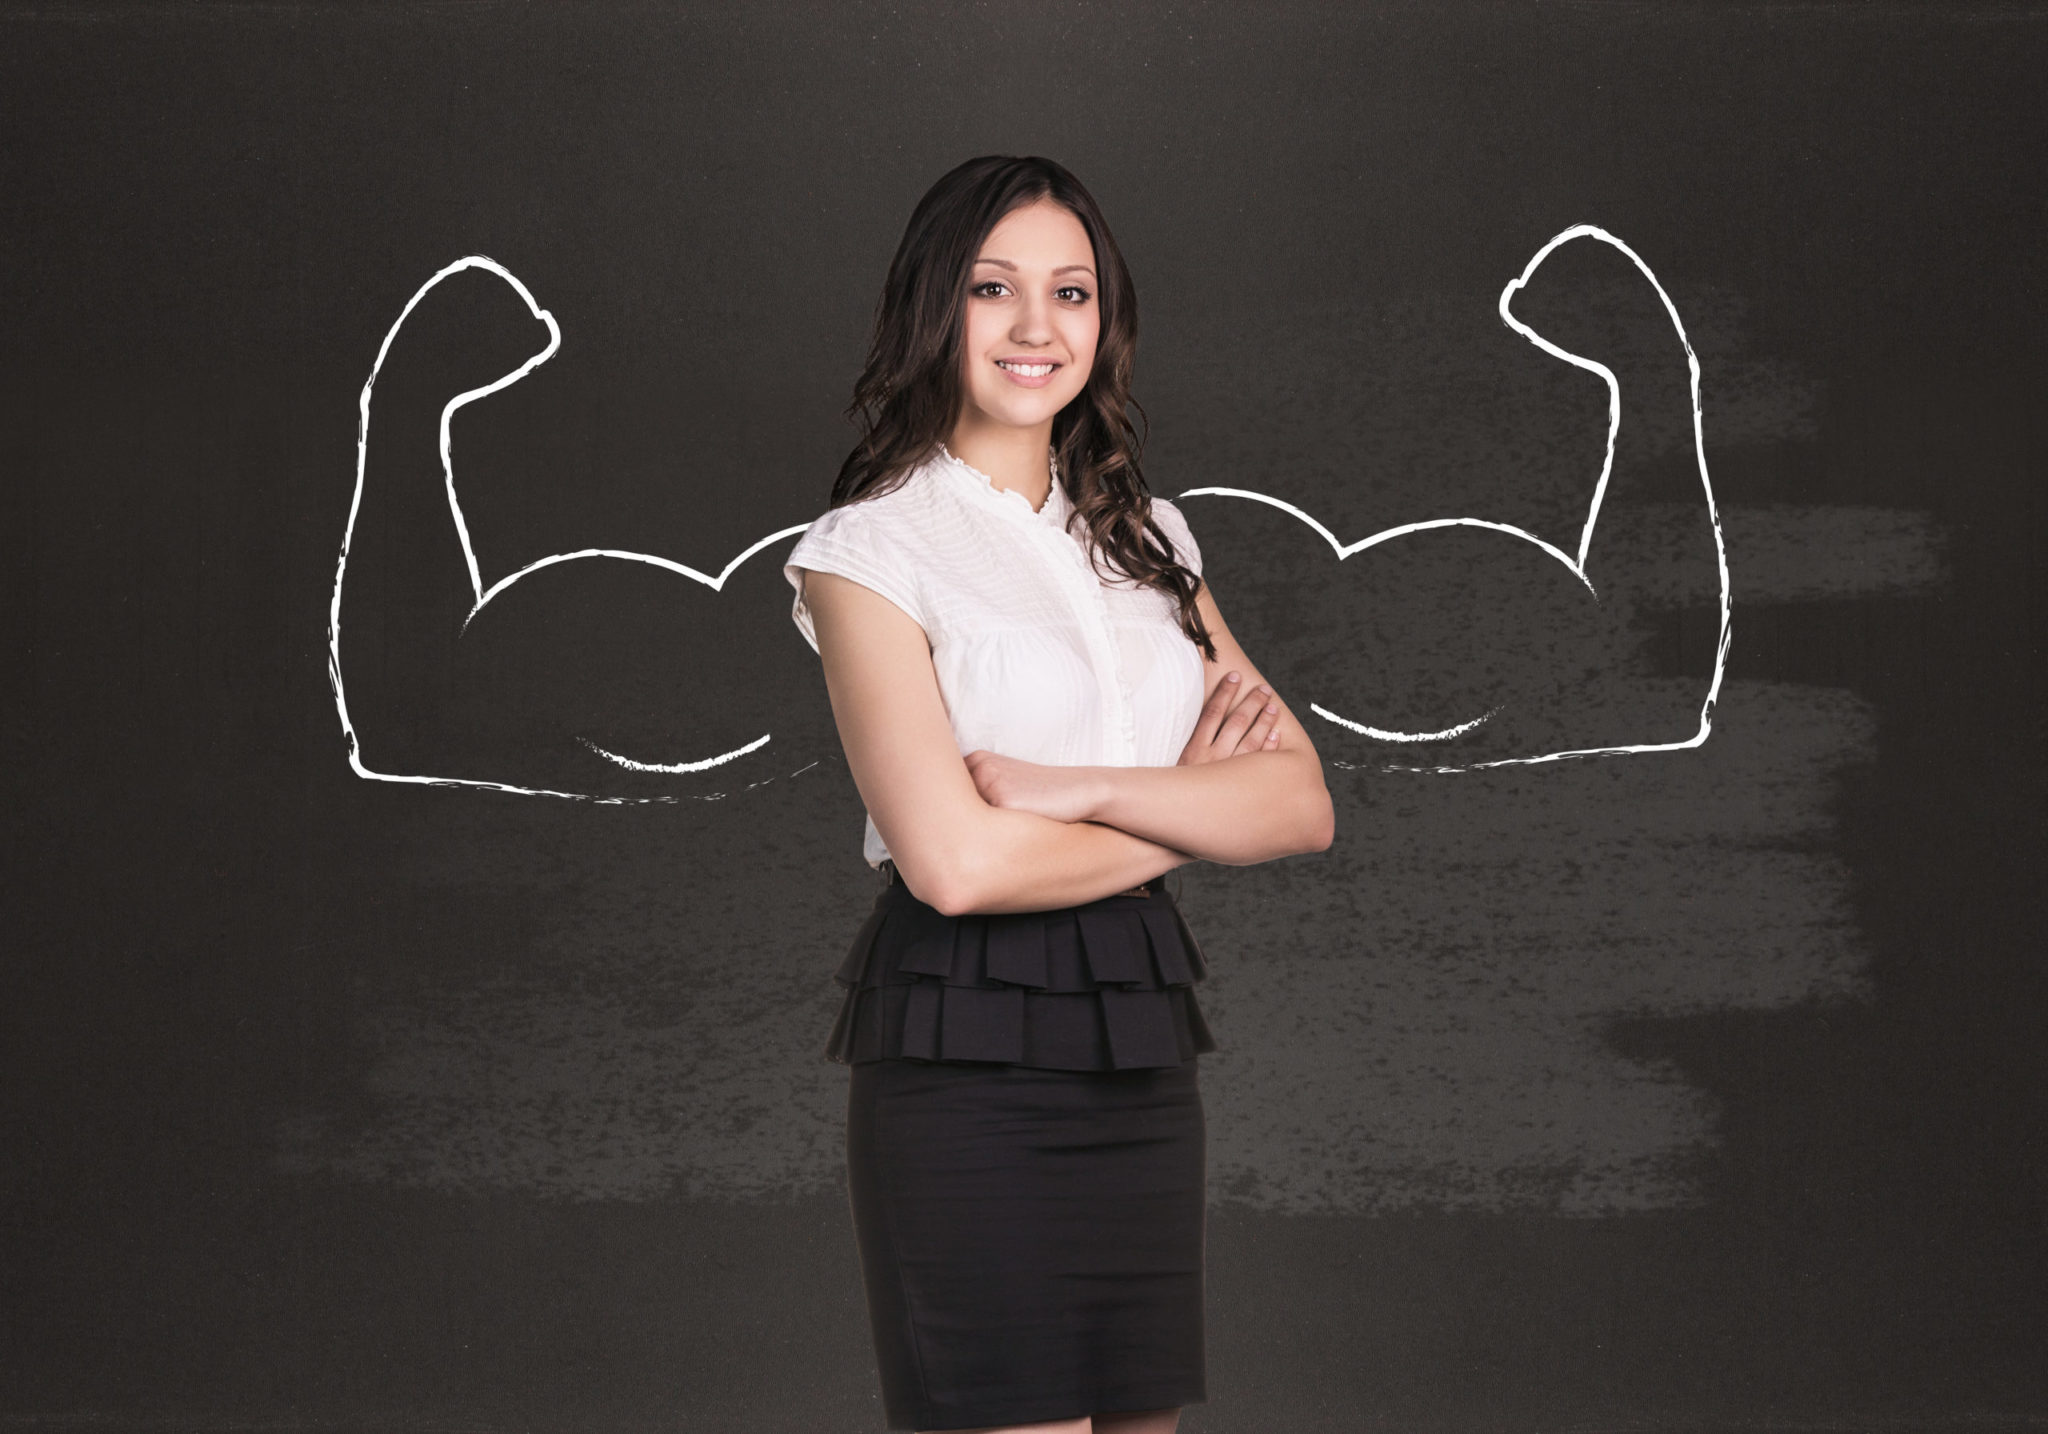 Strong woman image